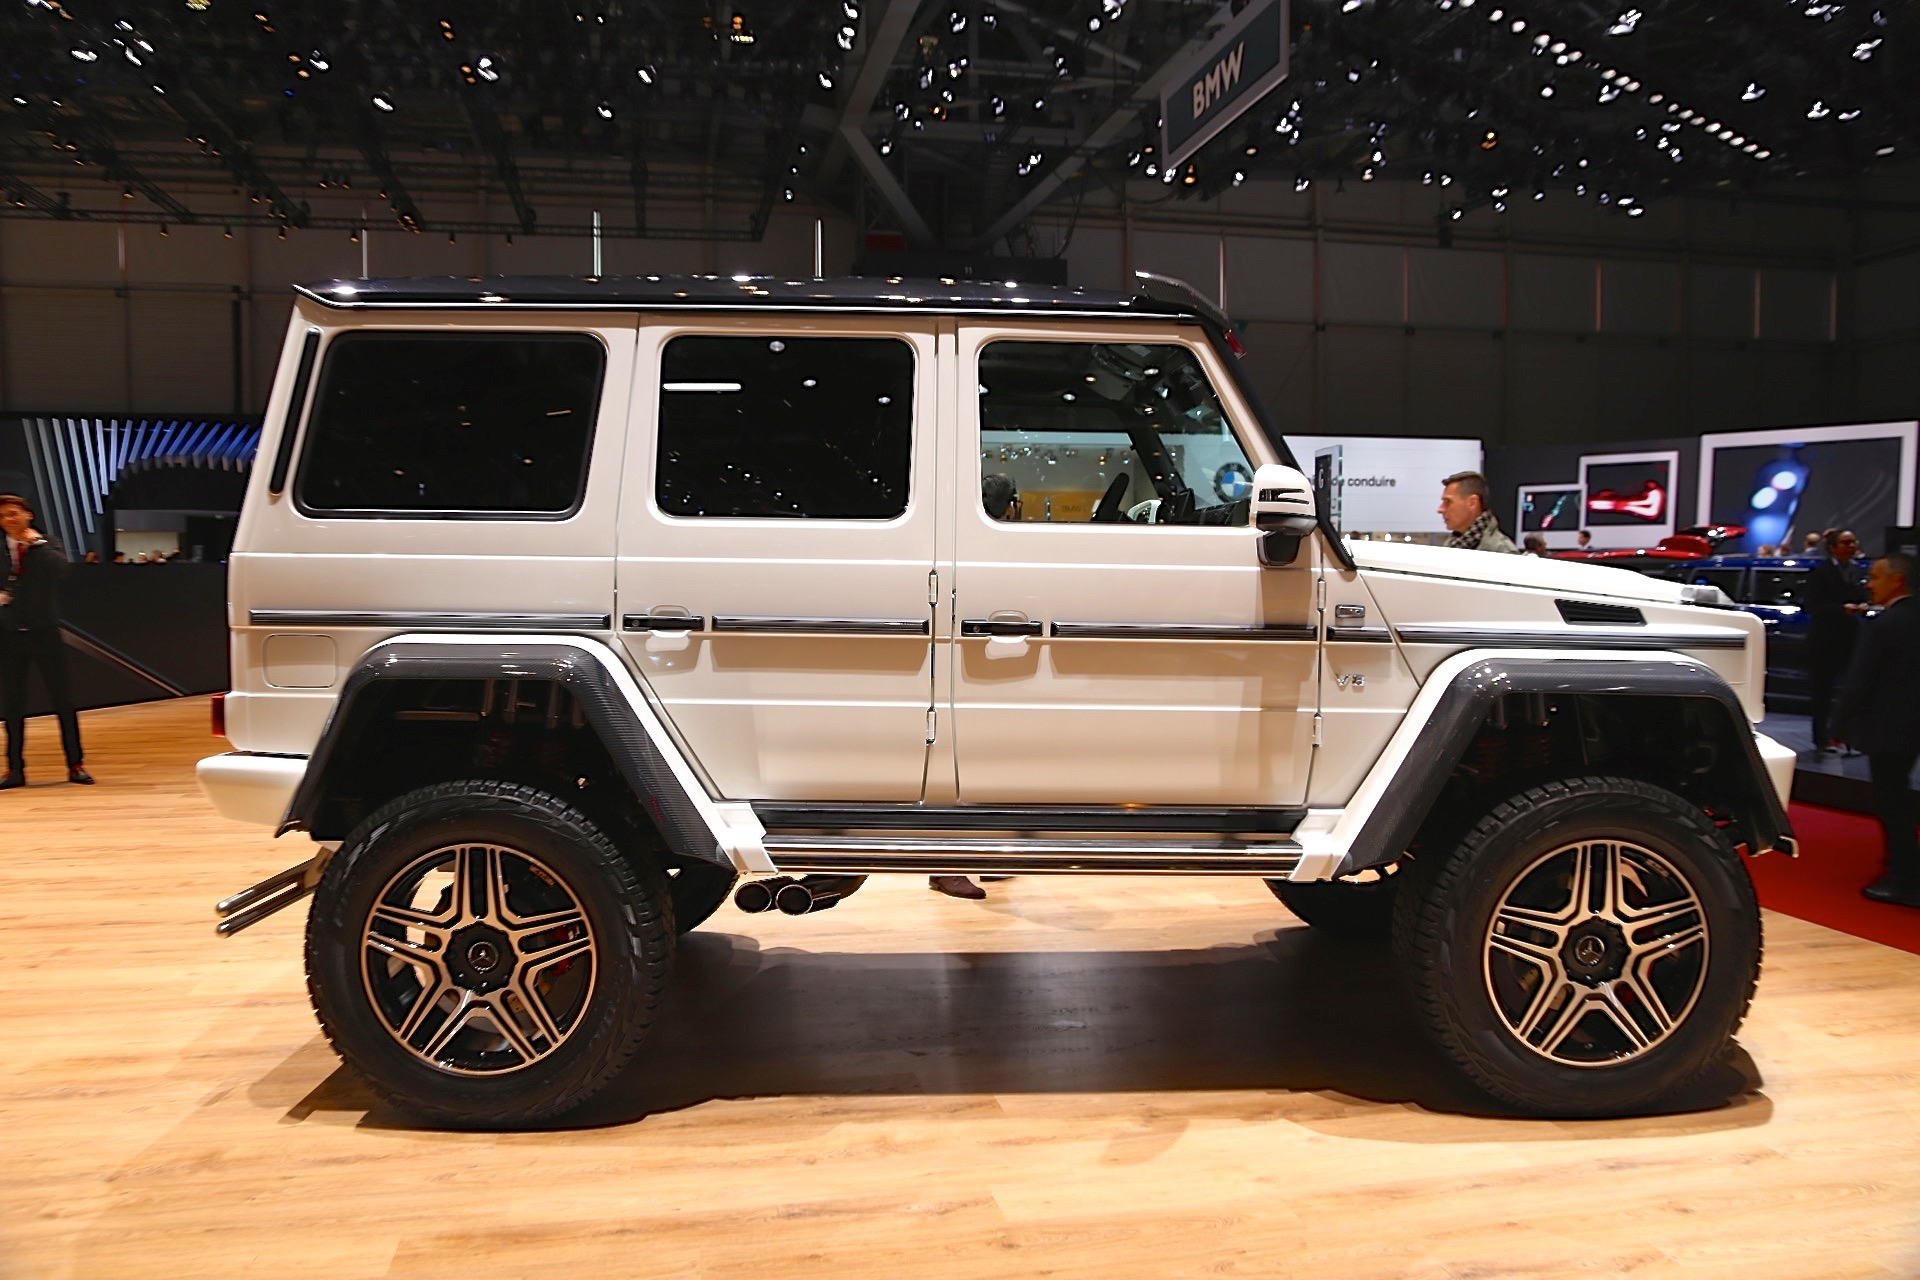 Cars For Sale Los Angeles >> Mercedes-Benz G500 4x4² concept debuts at 2015 Geneva auto show